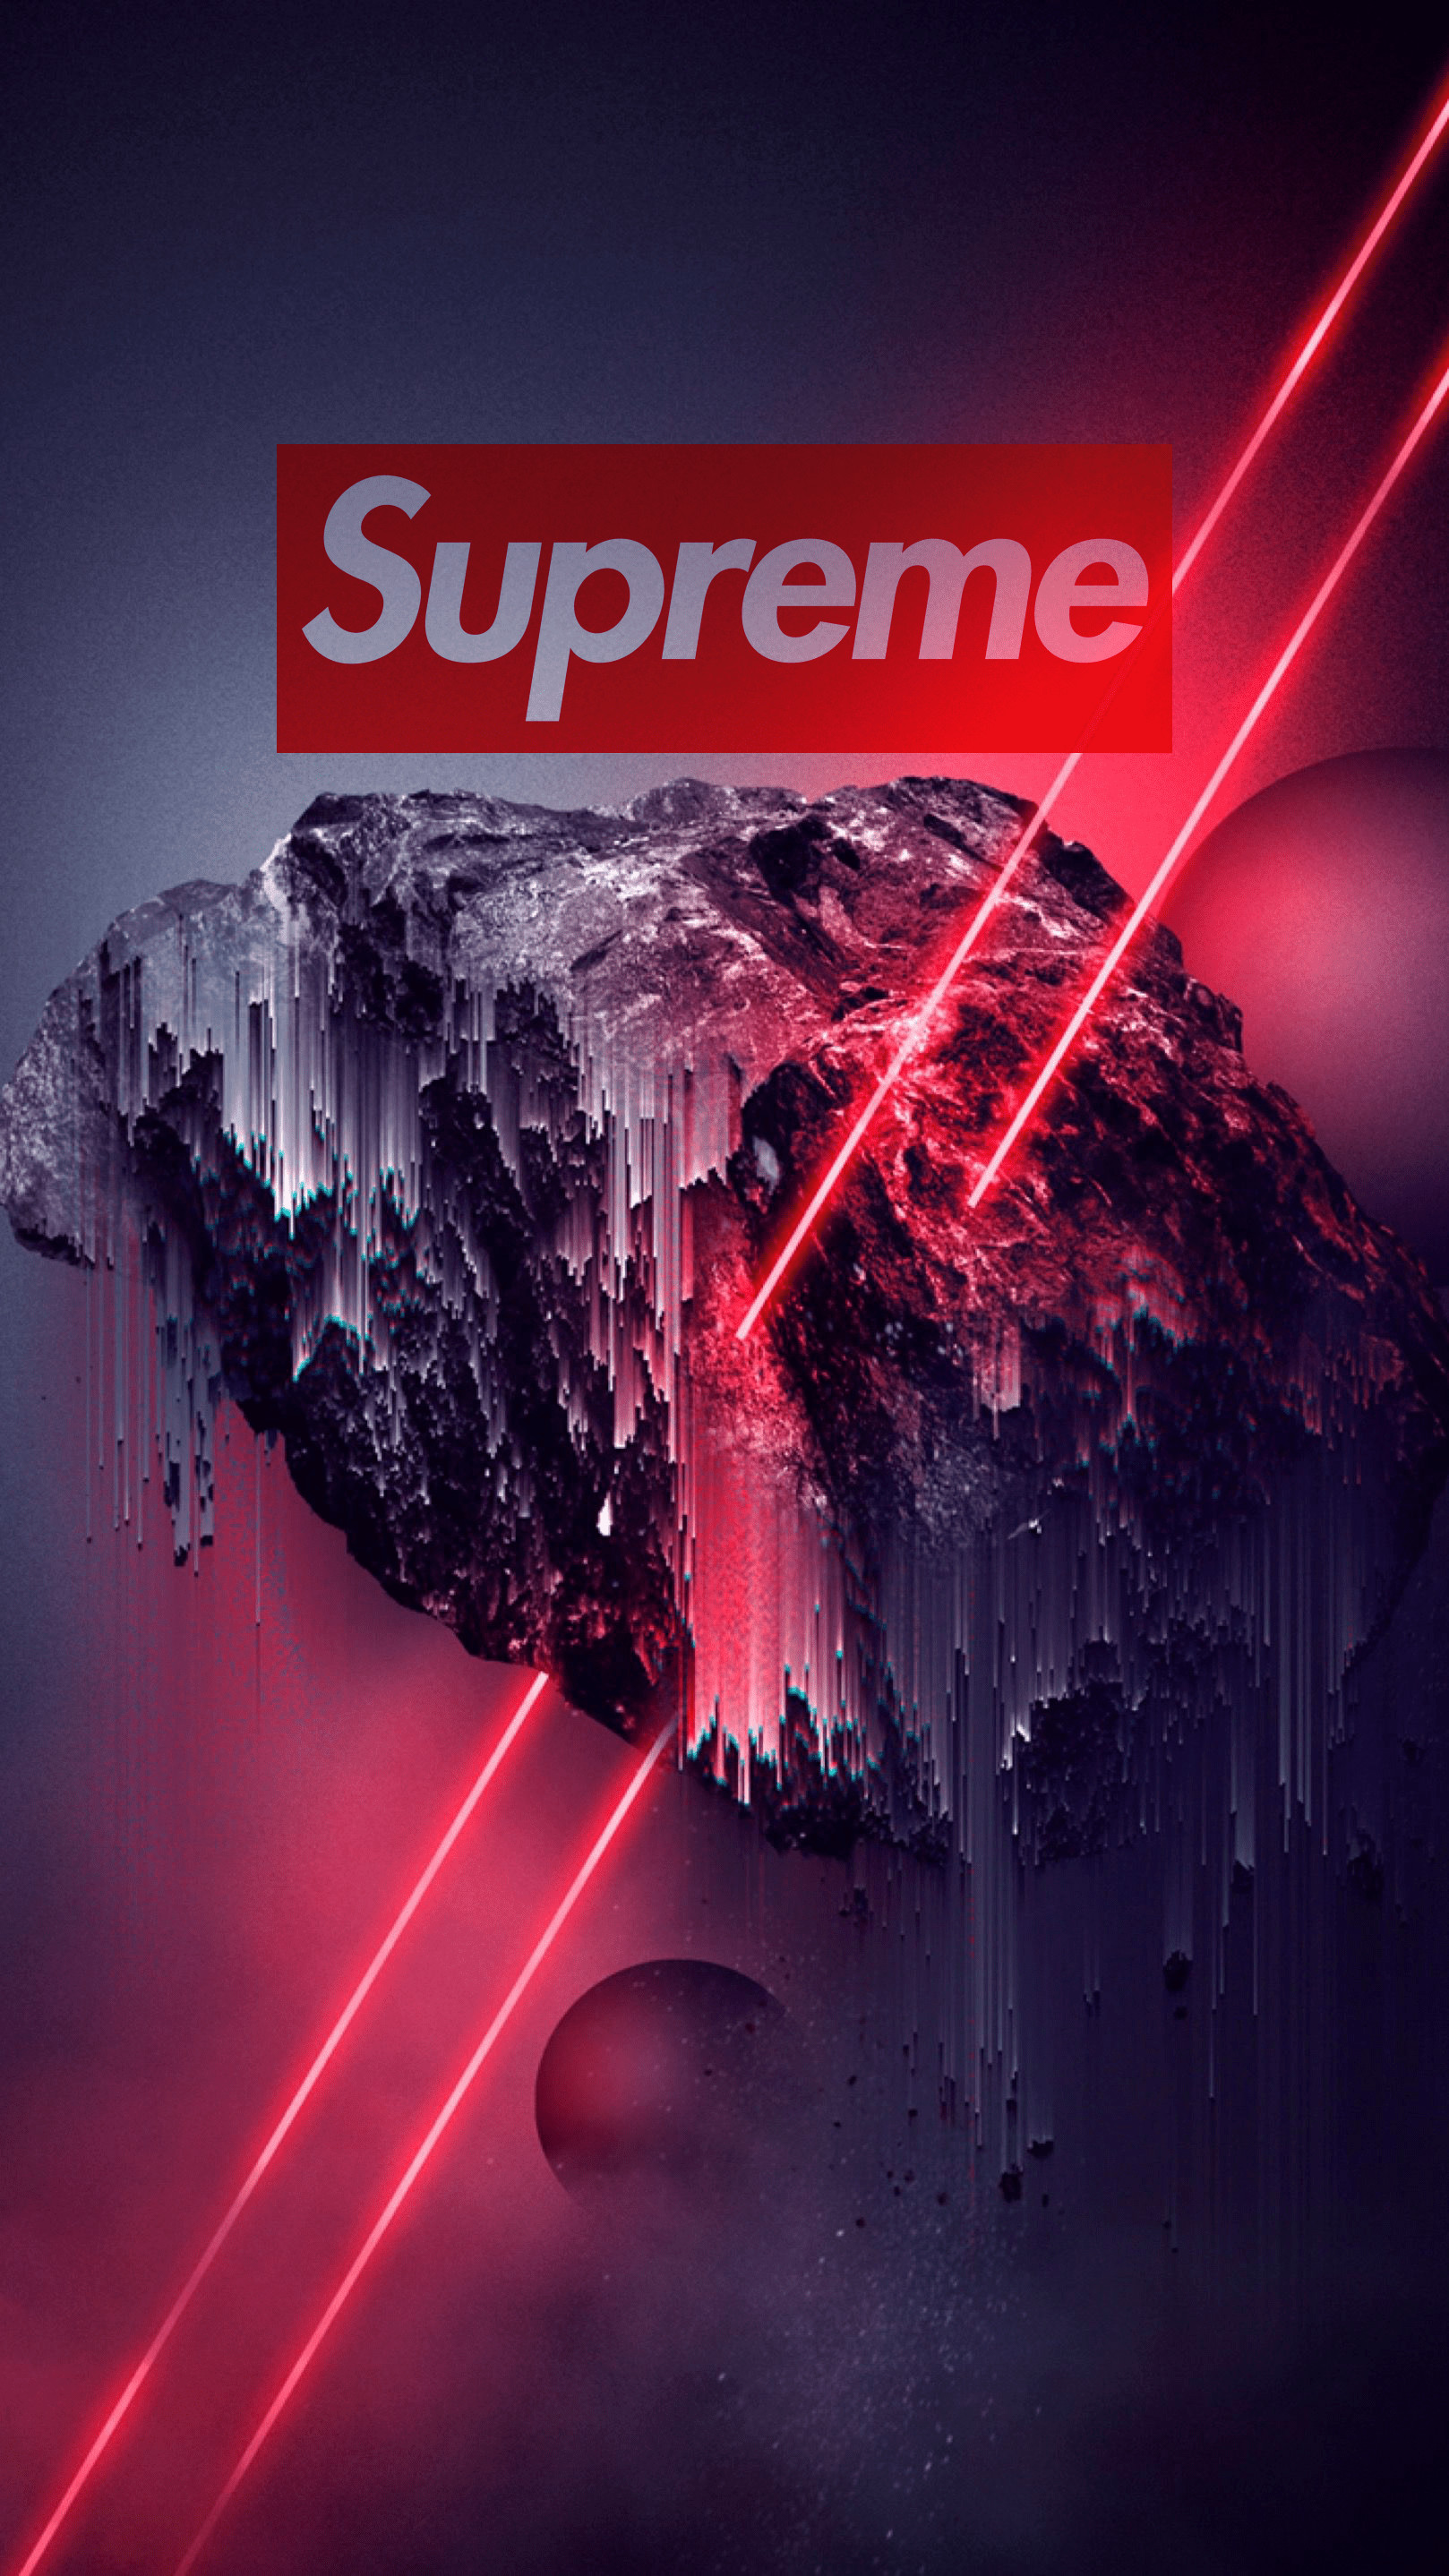 Supreme Live Wallpaper Girl Wallgiftwatchesco